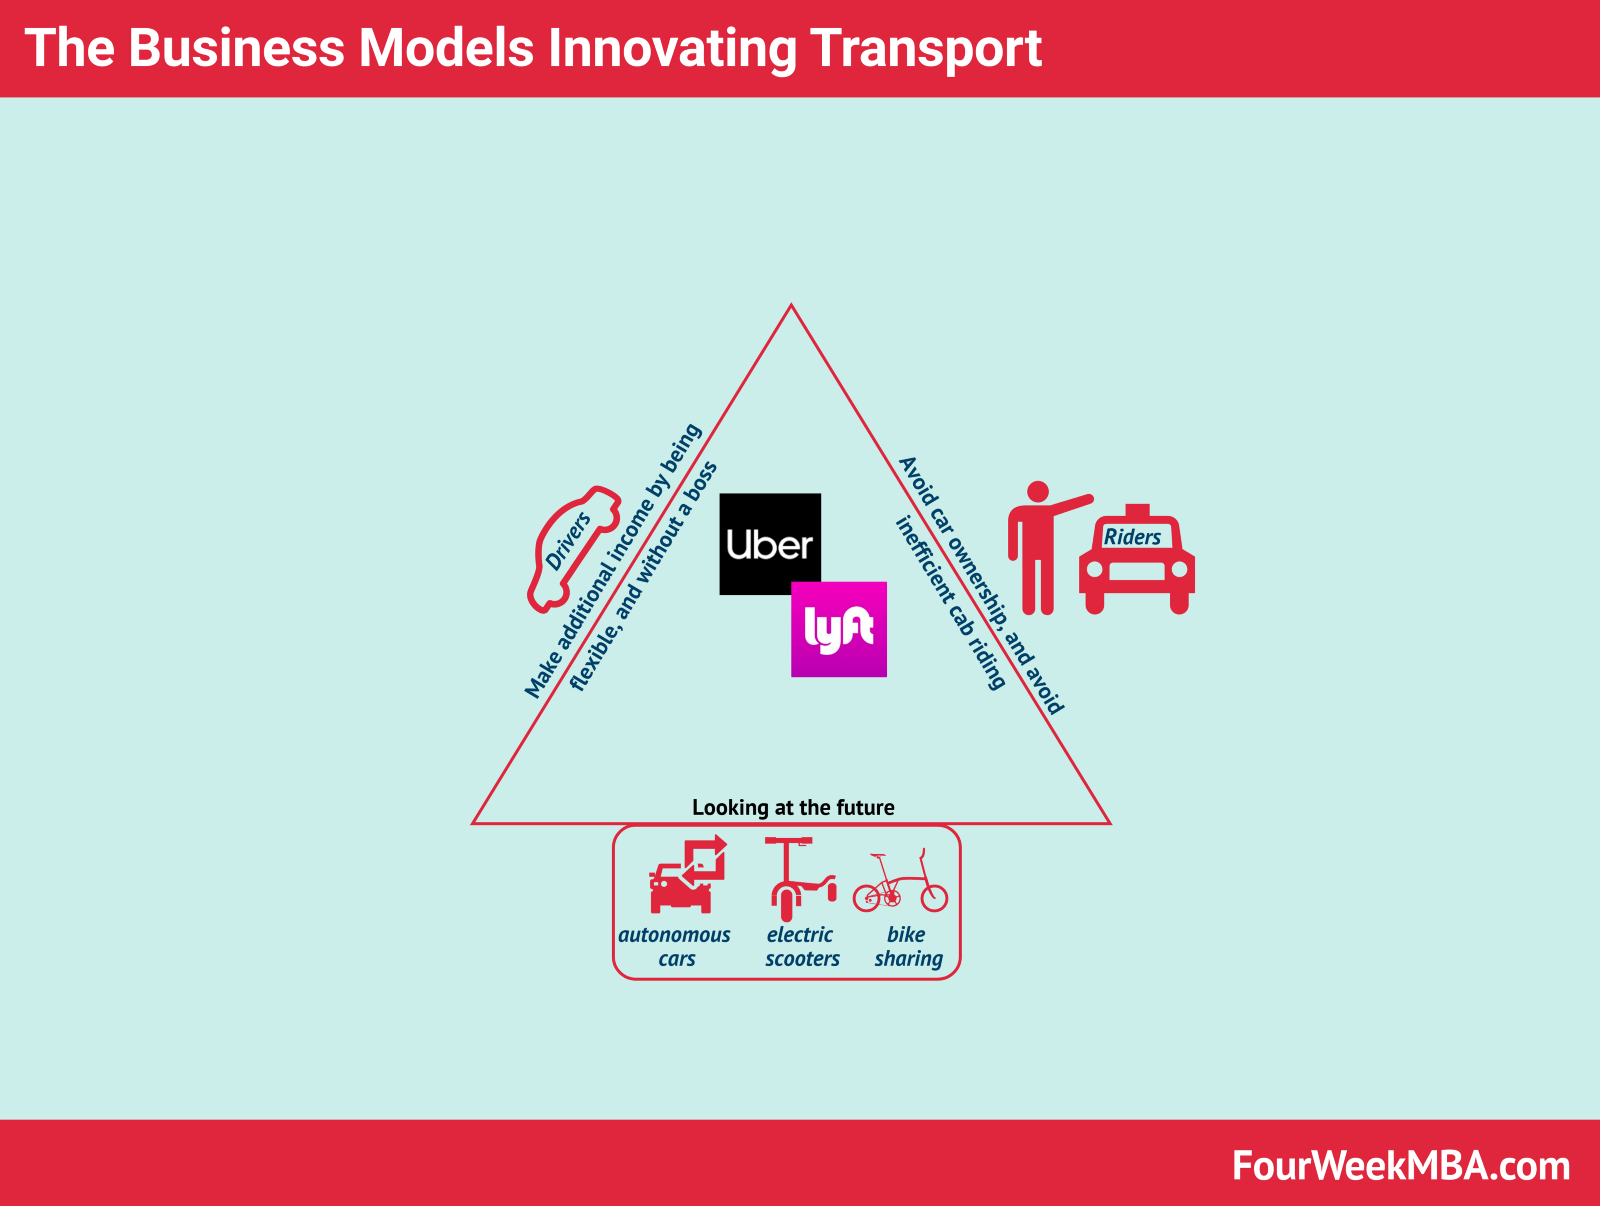 uber and lyft u2019s business models in laymen u2019s terms